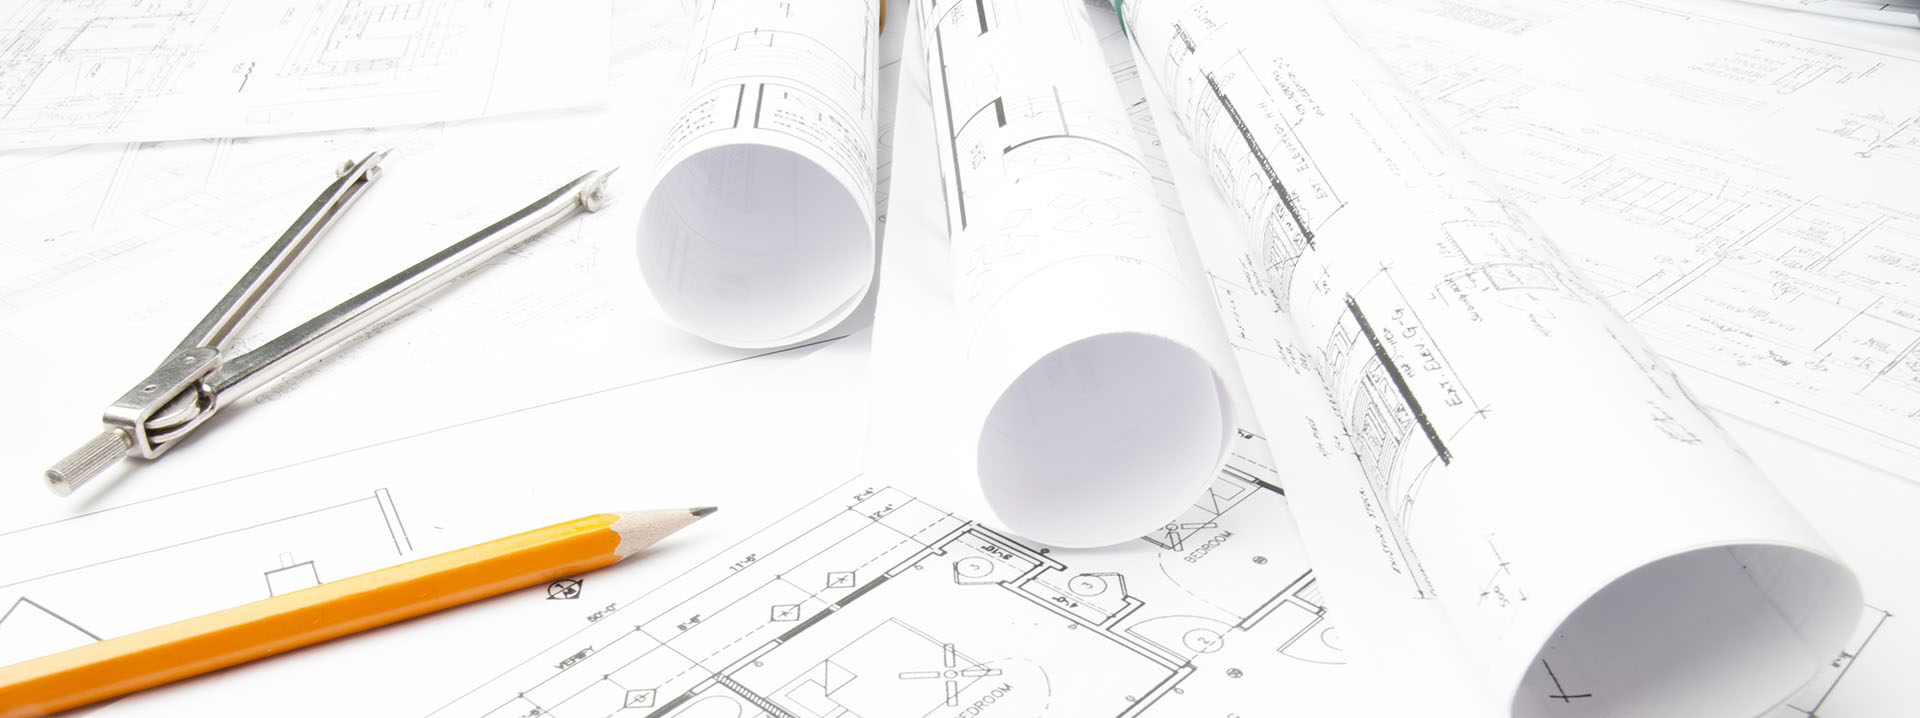 Image of construction planning drawings